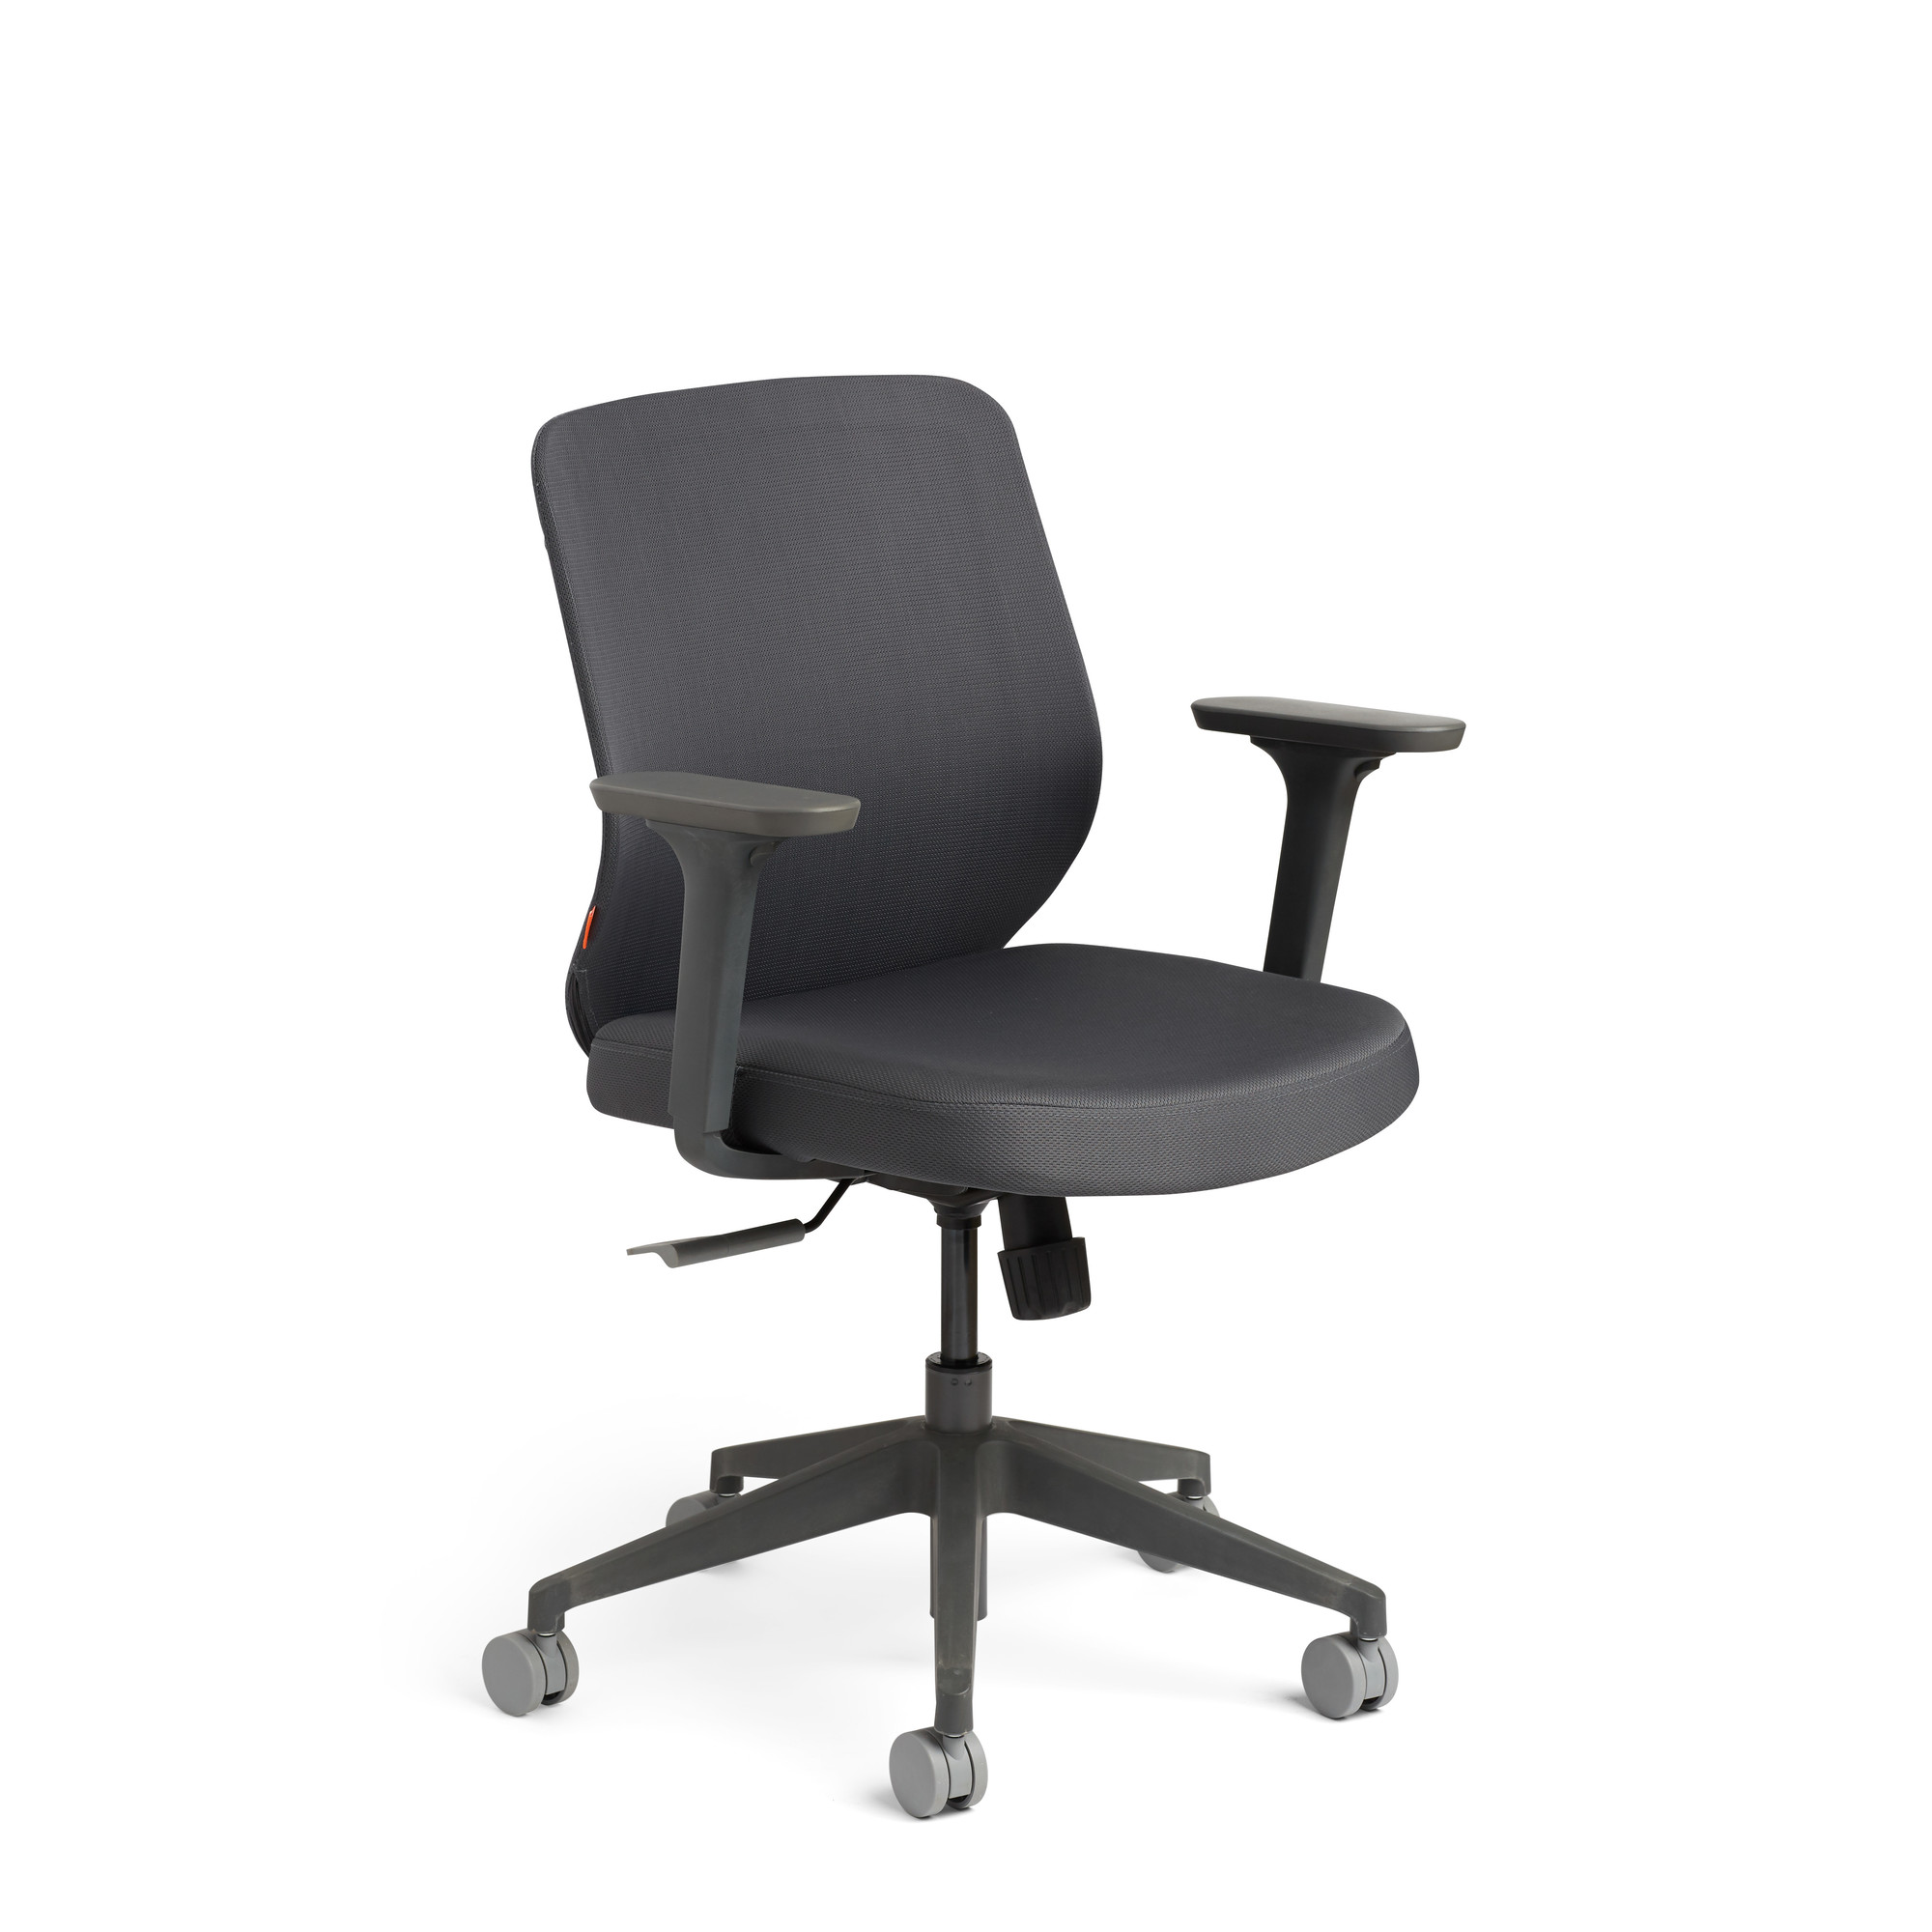 Dark Gray Max Task Chair, Mid Back, Charcoal Frame,Dark Gray,hi. Loading  Zoom